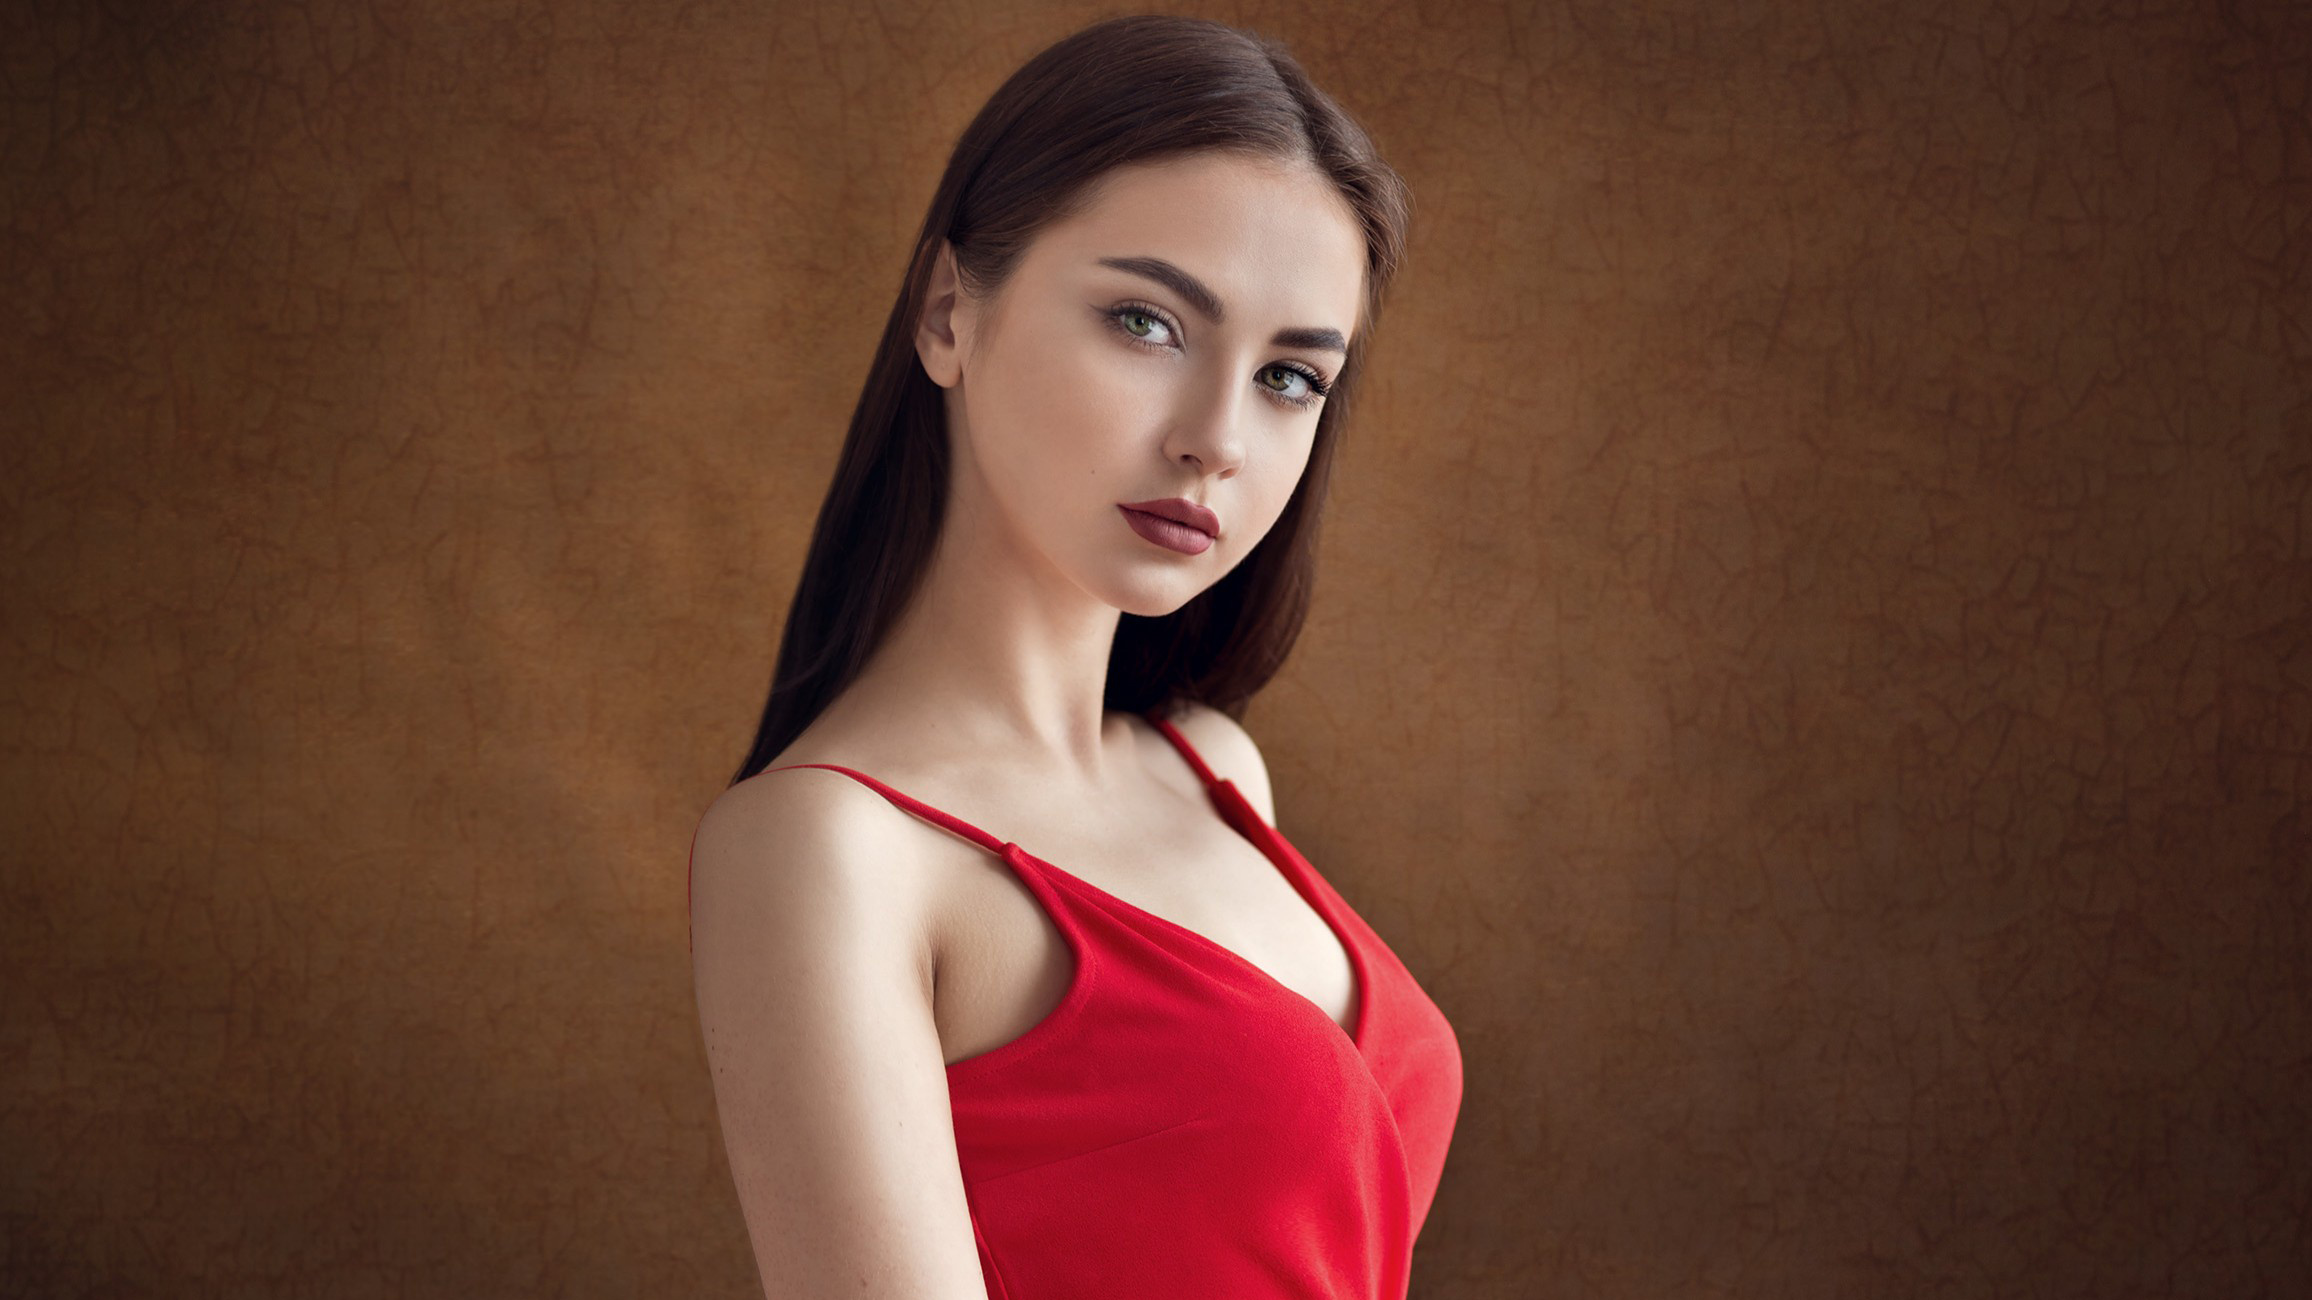 2880x1800 Beautiful Girl In Red Dress Macbook Pro Retina Hd 4k Wallpapers Images Backgrounds Photos And Pictures